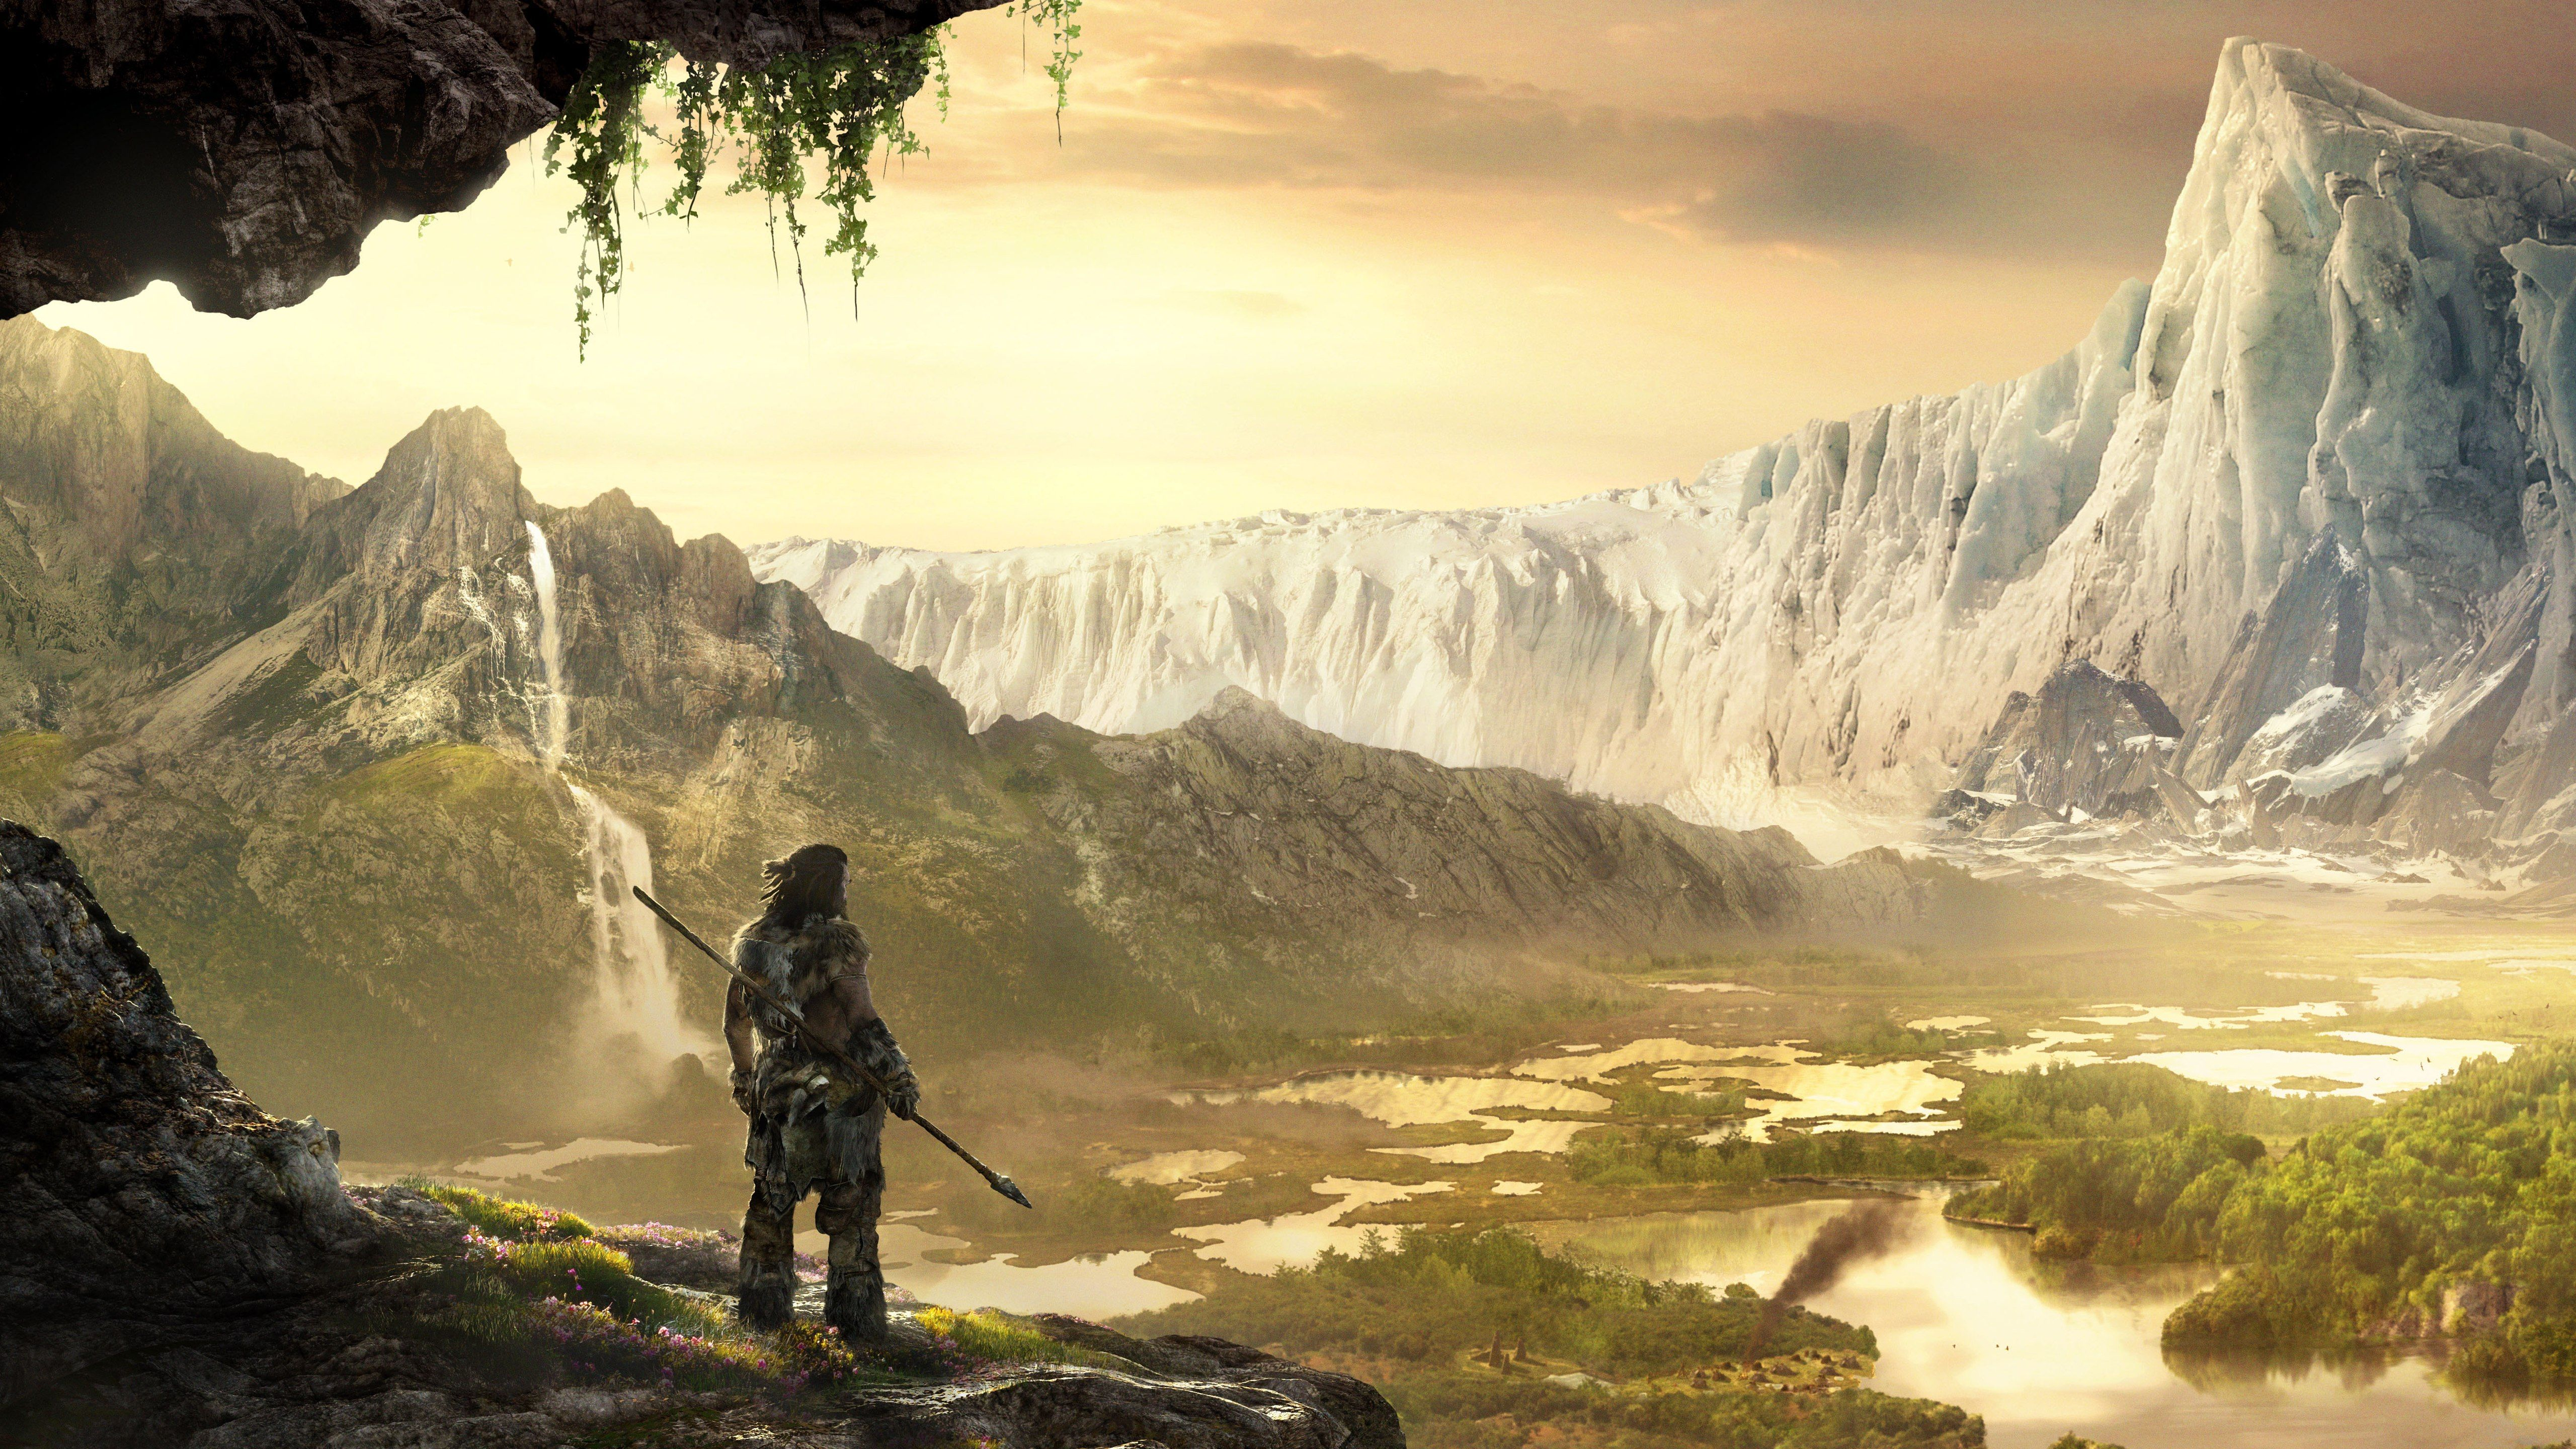 Download Far Cry Primal Wallpaper Wide On Hd Wallpaper At